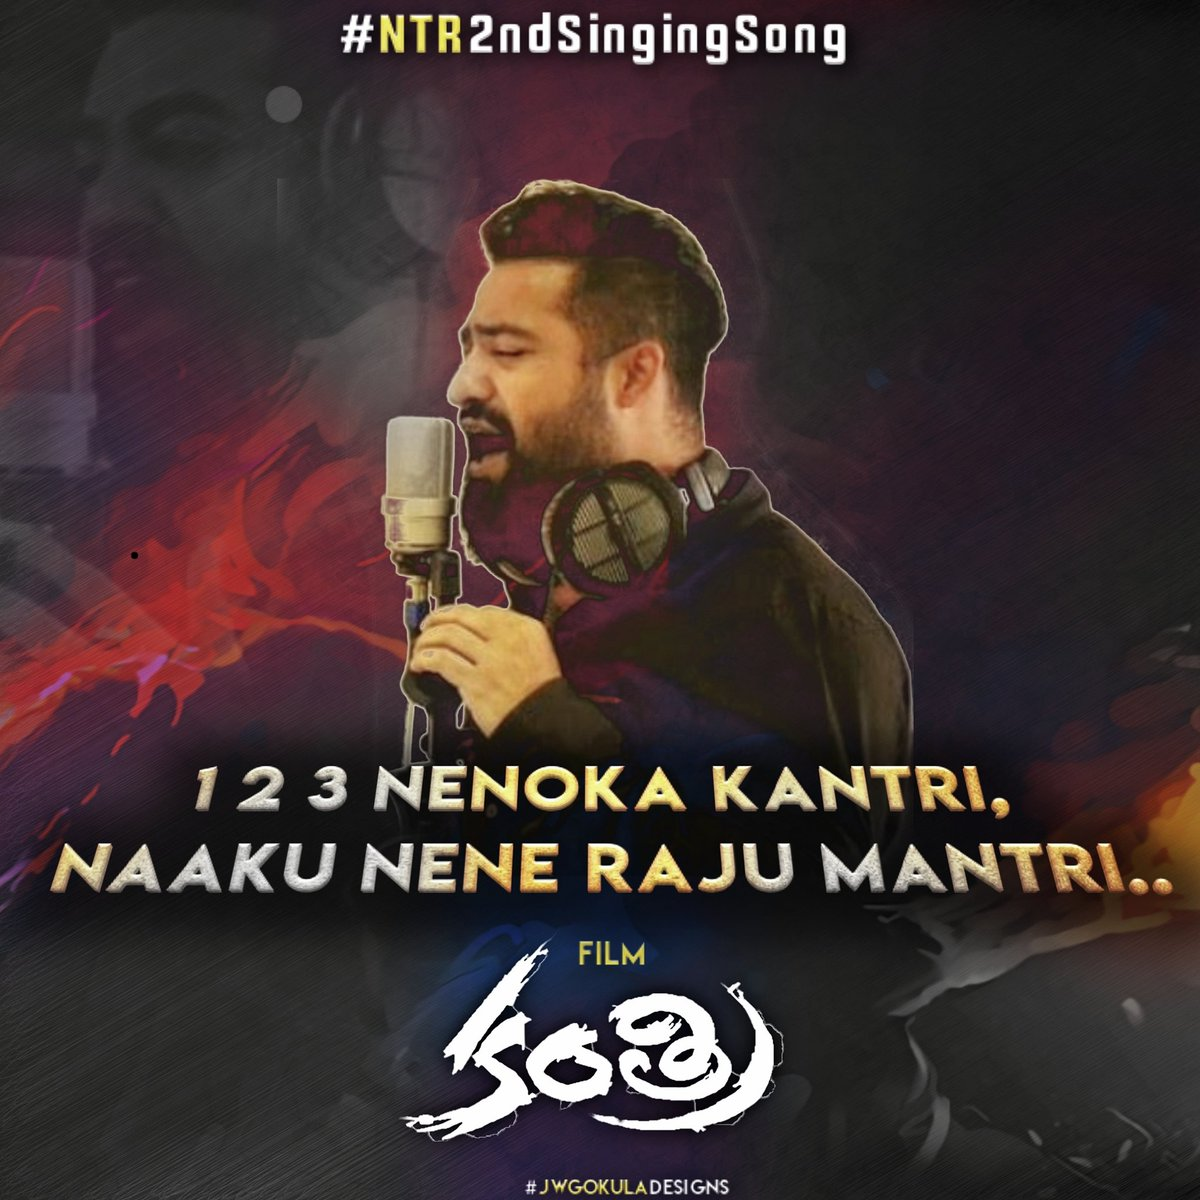 @tarak9999 2nd song   1...2...3... Nenoka Kantri... Baku nene Raju Mantri.....  #Kanthri Movie  #NTRBirthdayCDP https://t.co/mHoHpvRPxo